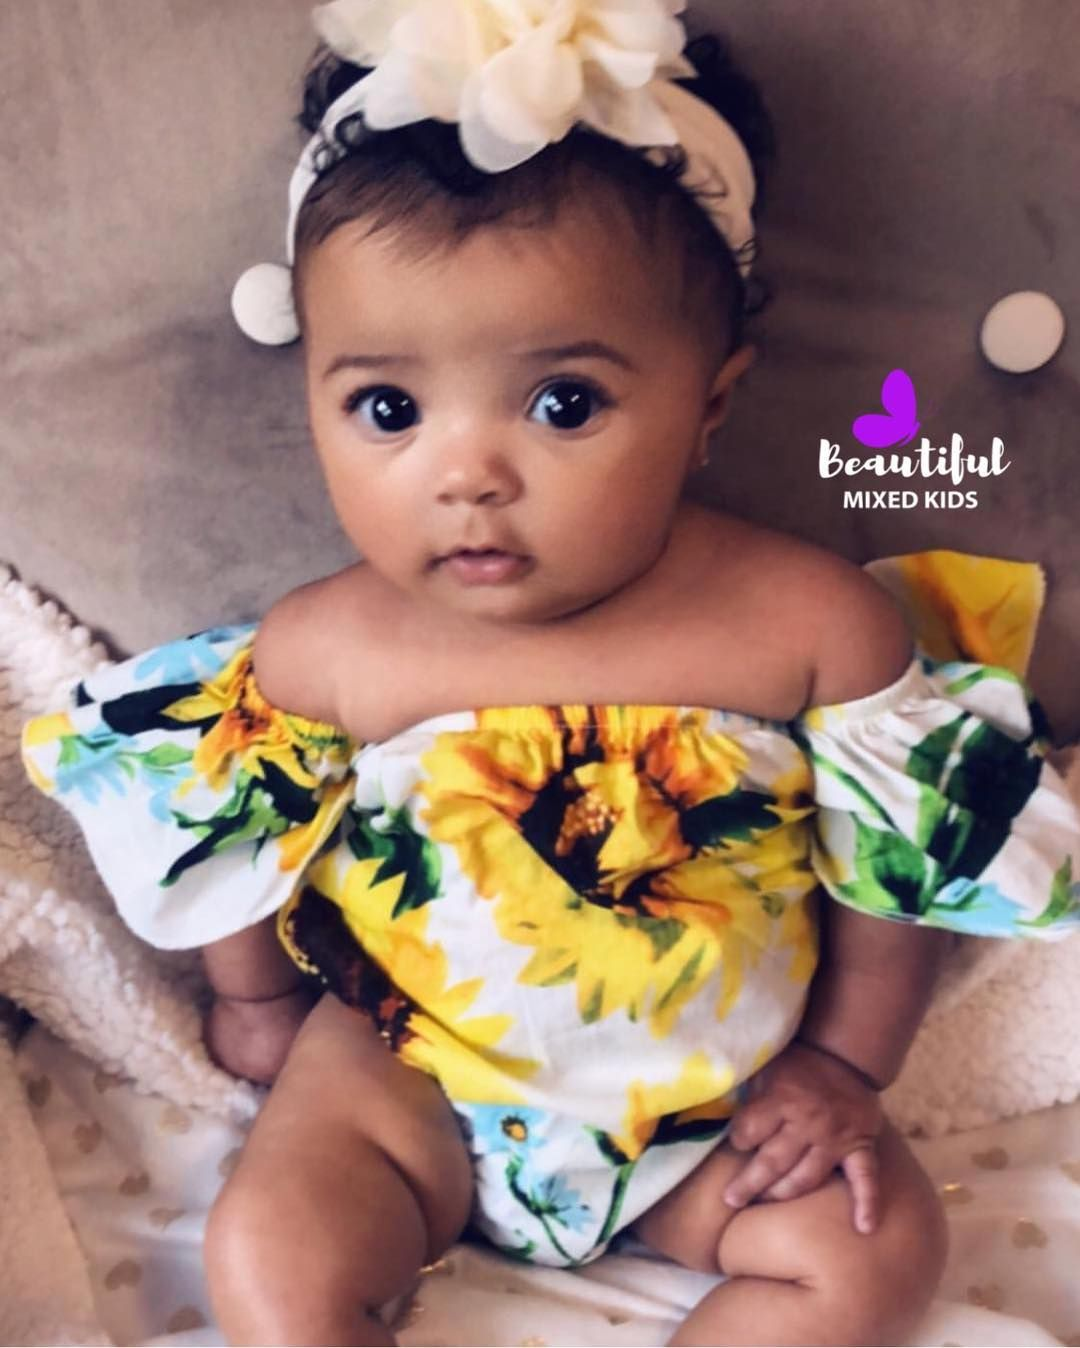 Pin by rismary on cute babies pinterest baby cute kids and cute